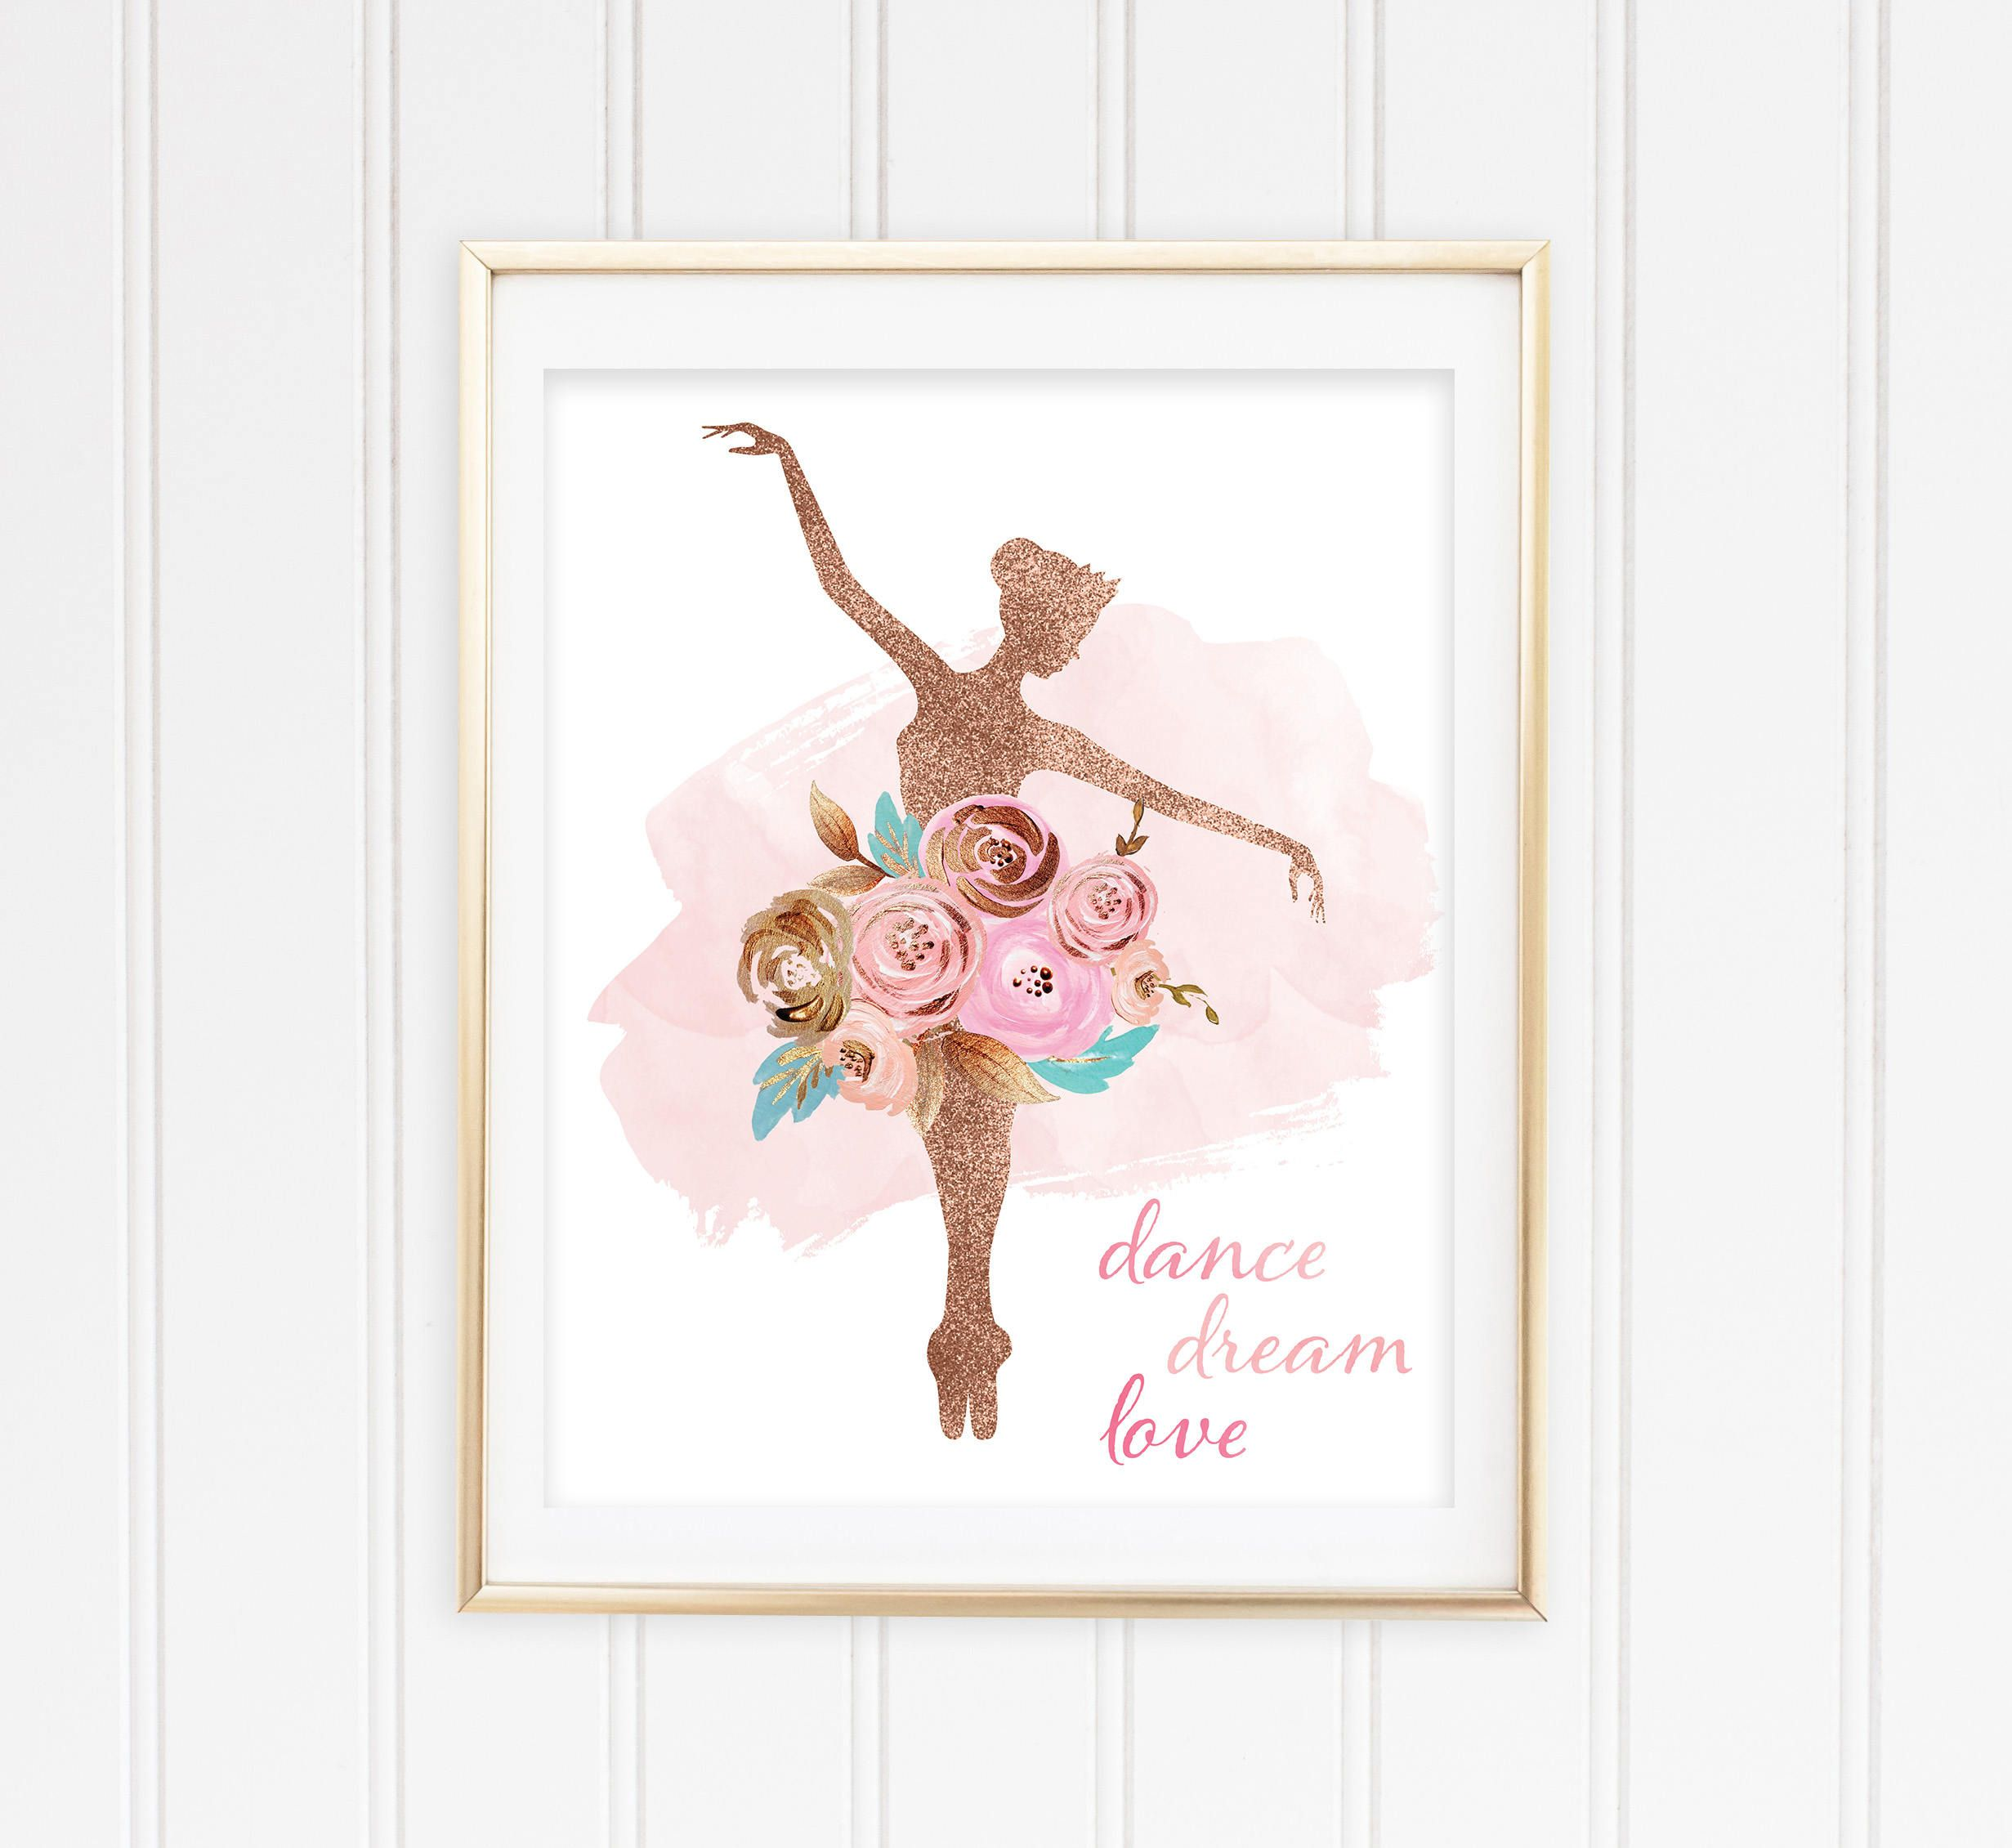 Ballerina Gift Ballerina Wall Art Girls Room Decor